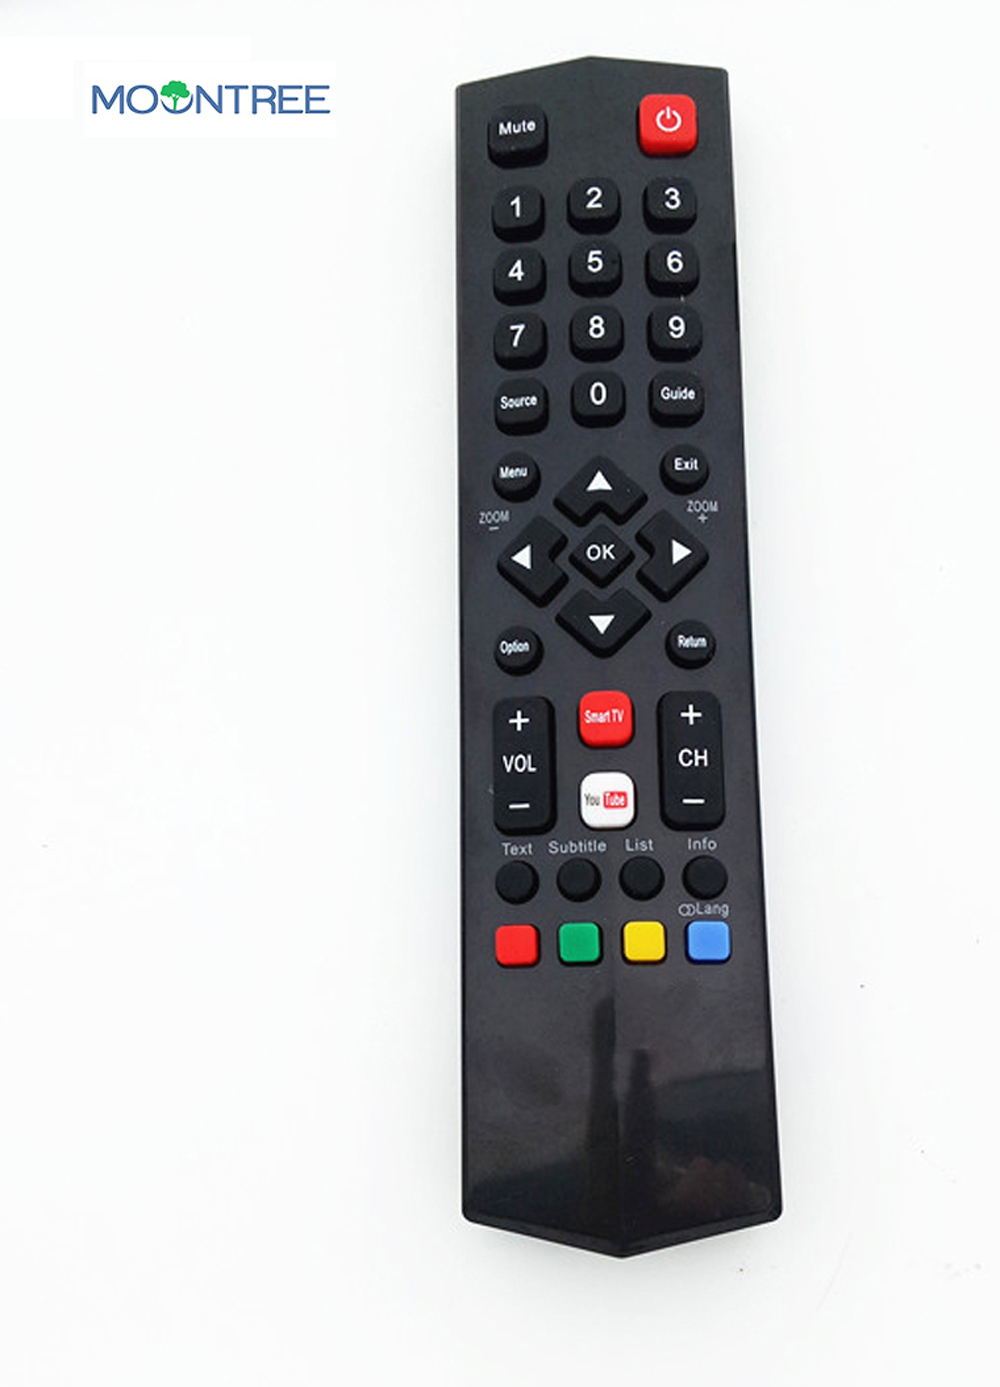 US $8 52 40% OFF|remote control for TCL YouTube for smart TV A/V controle  remoto 433mhz black RC200 latest factory price high quality MOONTREE -in